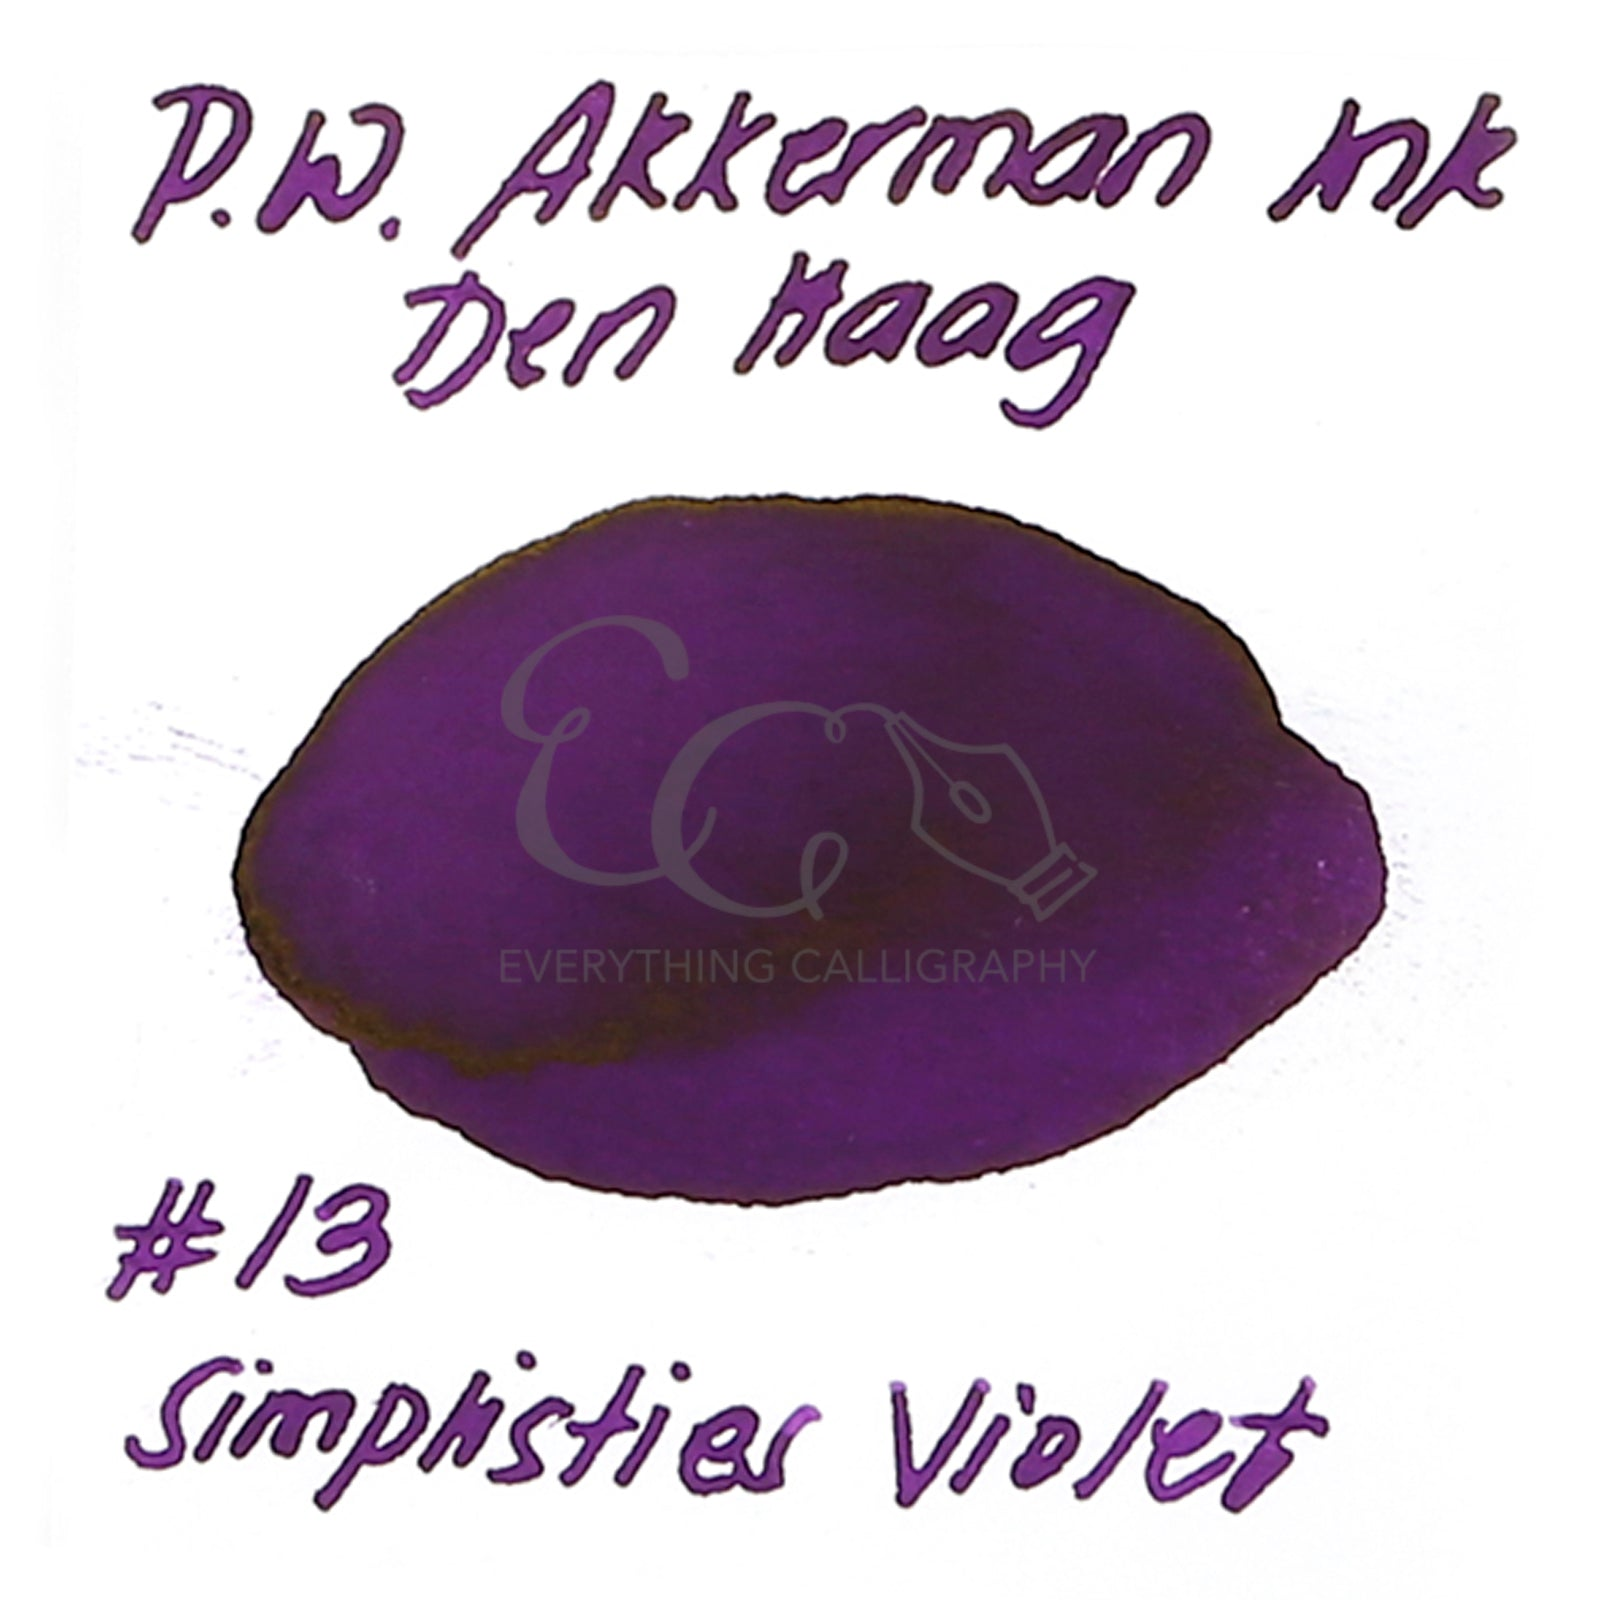 PW Akkerman Inks Sample Vials [3ml]